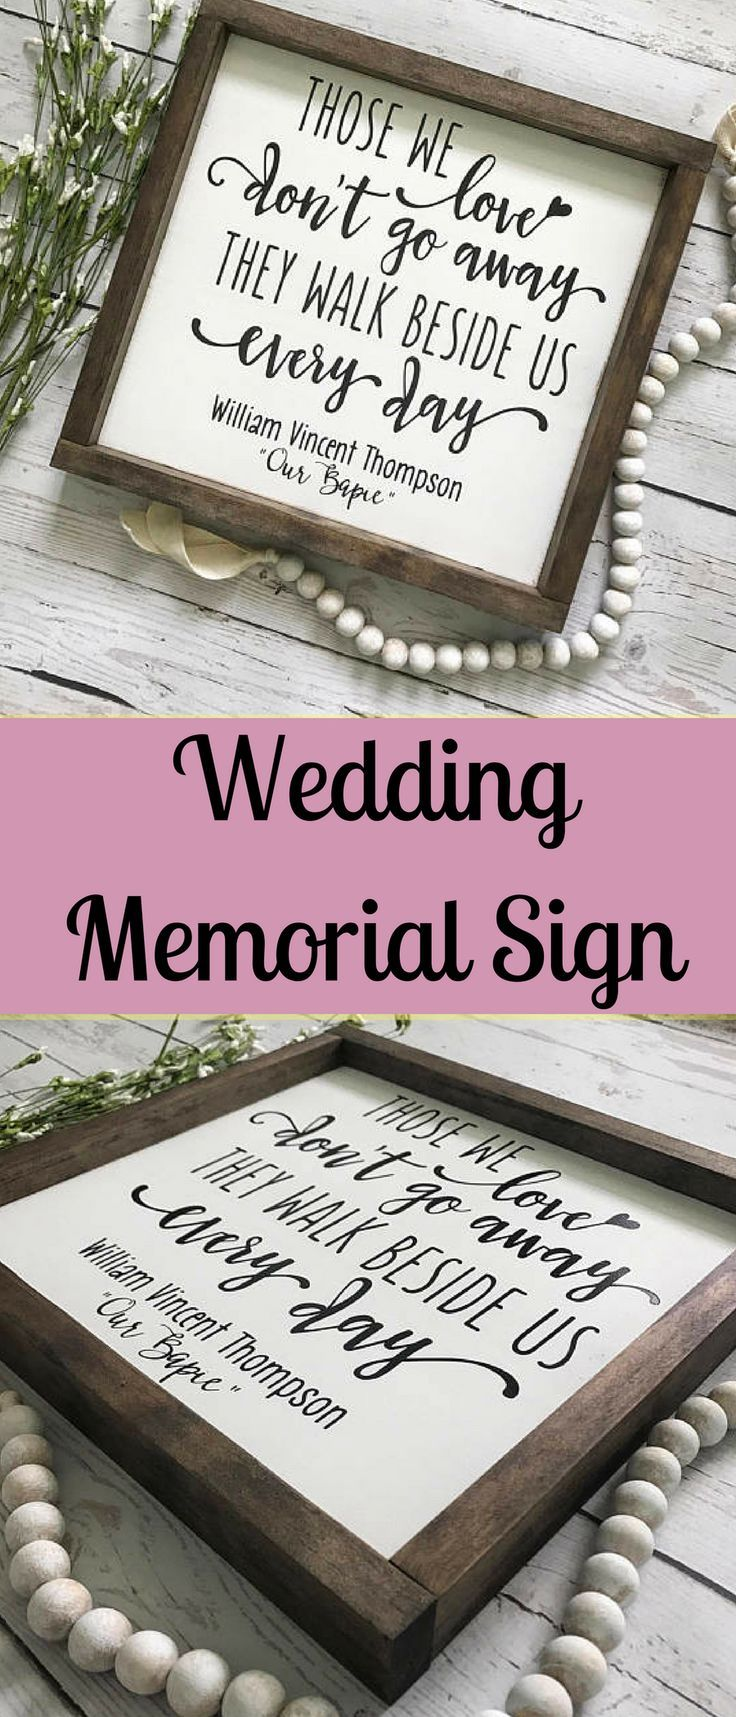 Those We Love Don't Go Away, Wedding Memorial Sign, Condolence sign, Memorial Gift, They Walk Beside Us Every Day, Wedding Sign, Remembrance #weddingsign #memorial #memorialgift #memory #quote #giftideas #remember #affiliate